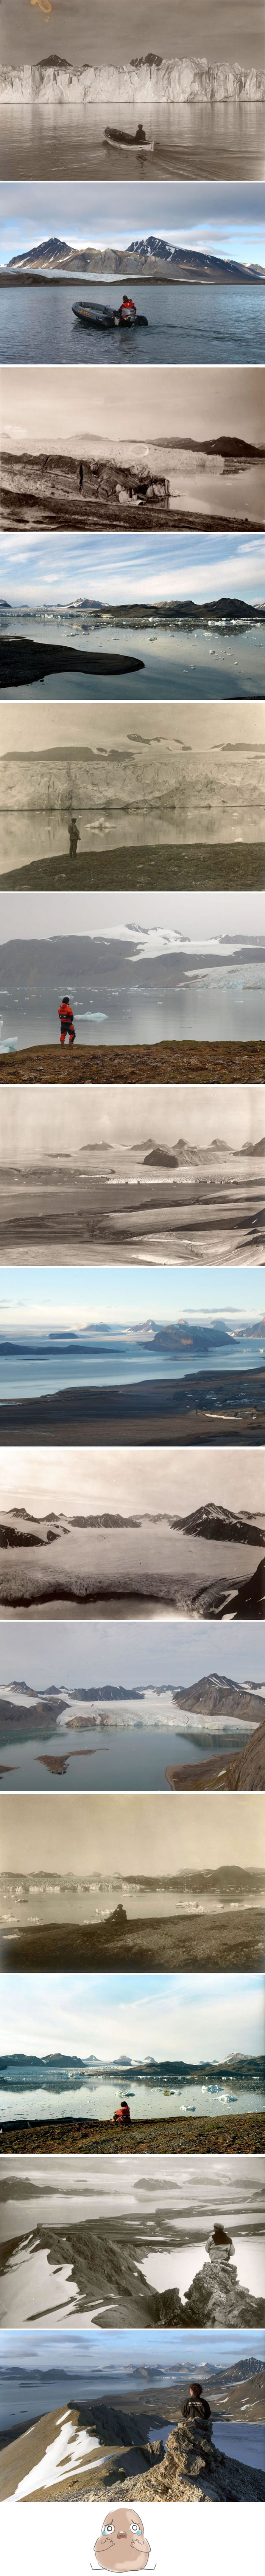 7 Shocking photos reveal what 100 years climate change had done to arctic glaciers